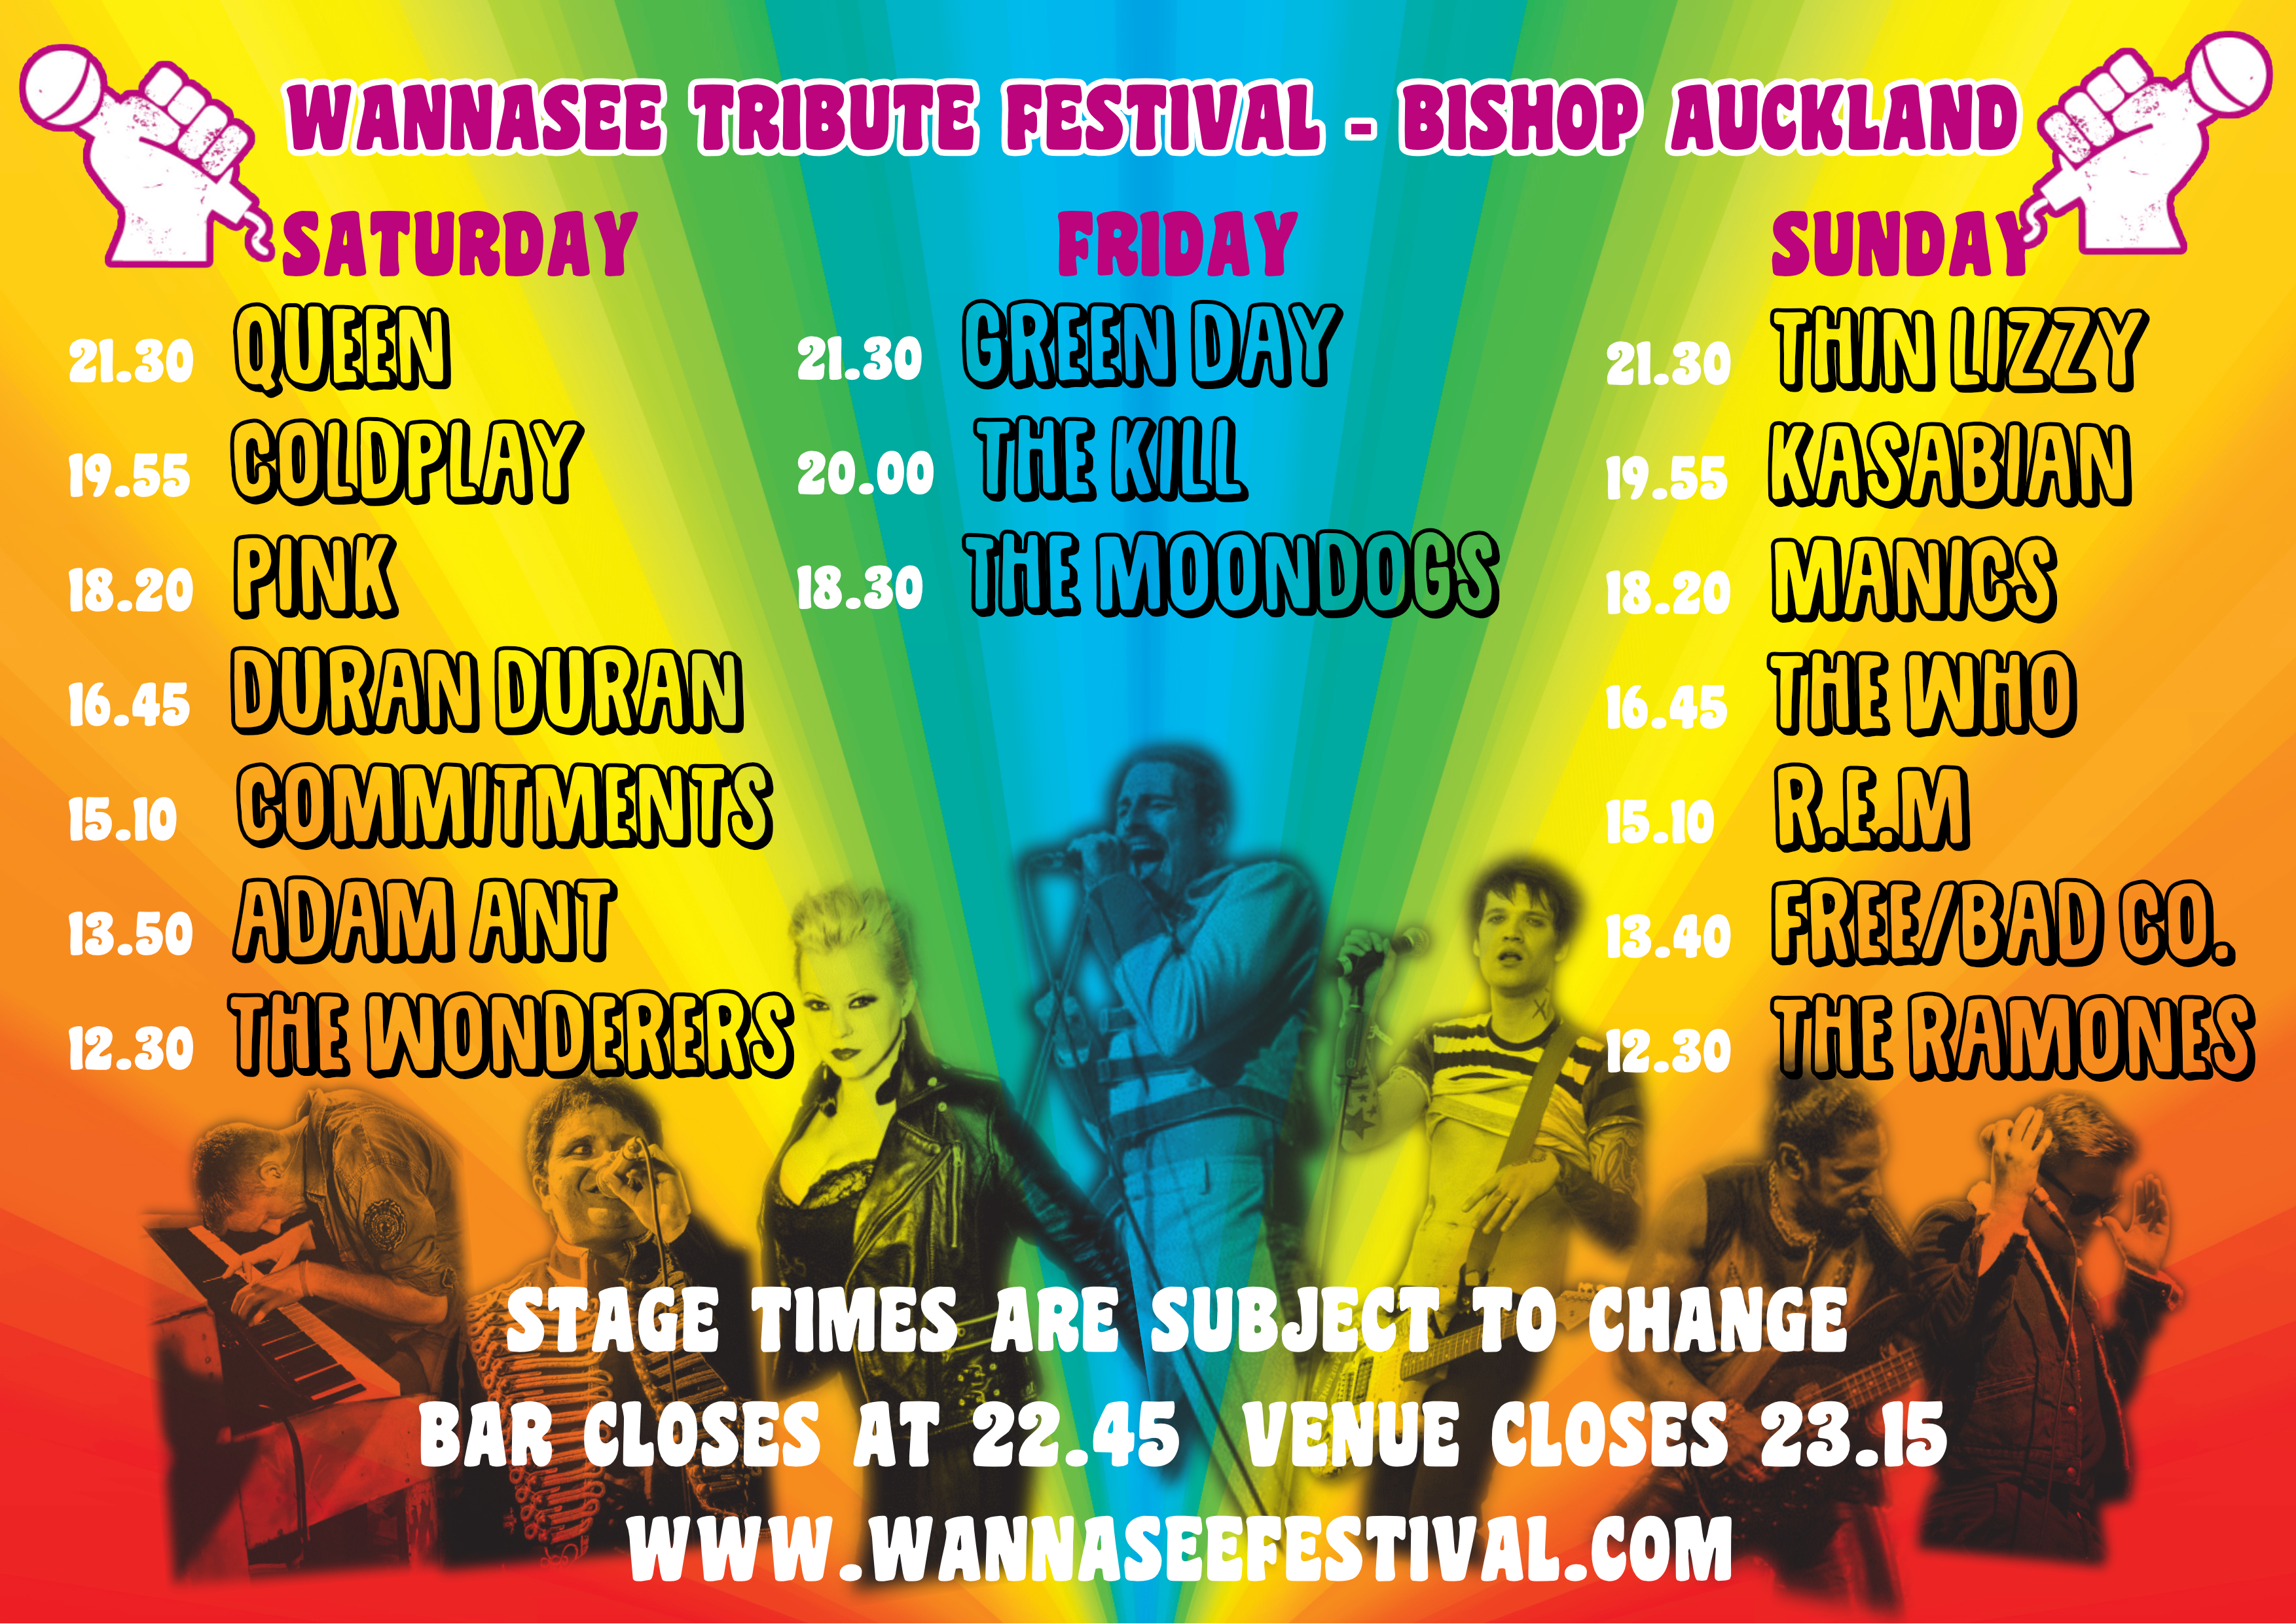 CLICK HERE FOR ON STAGE BAND TIMES